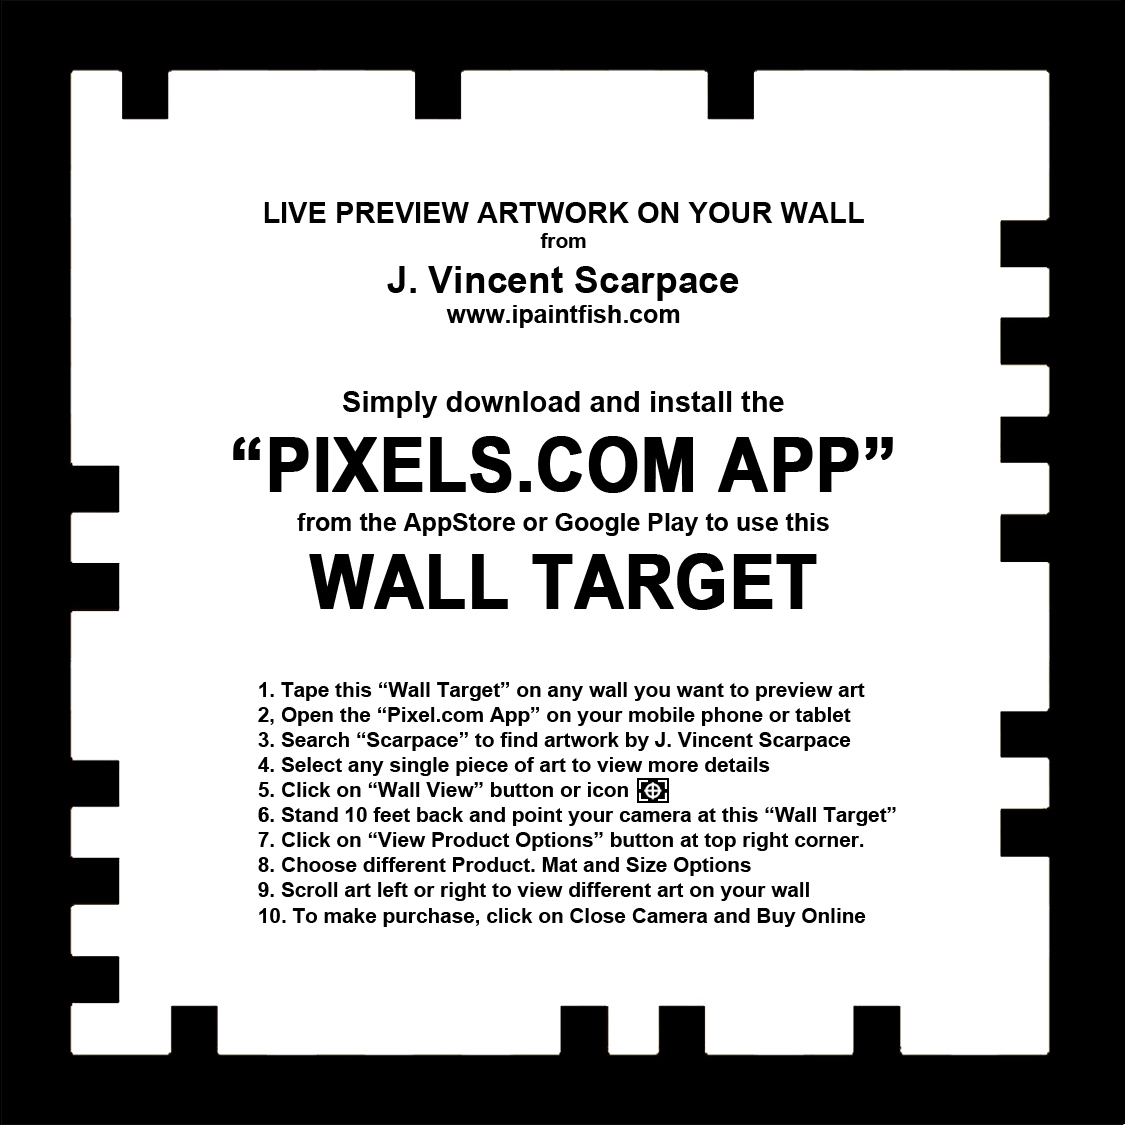 PRINT WALL TARGET NOW